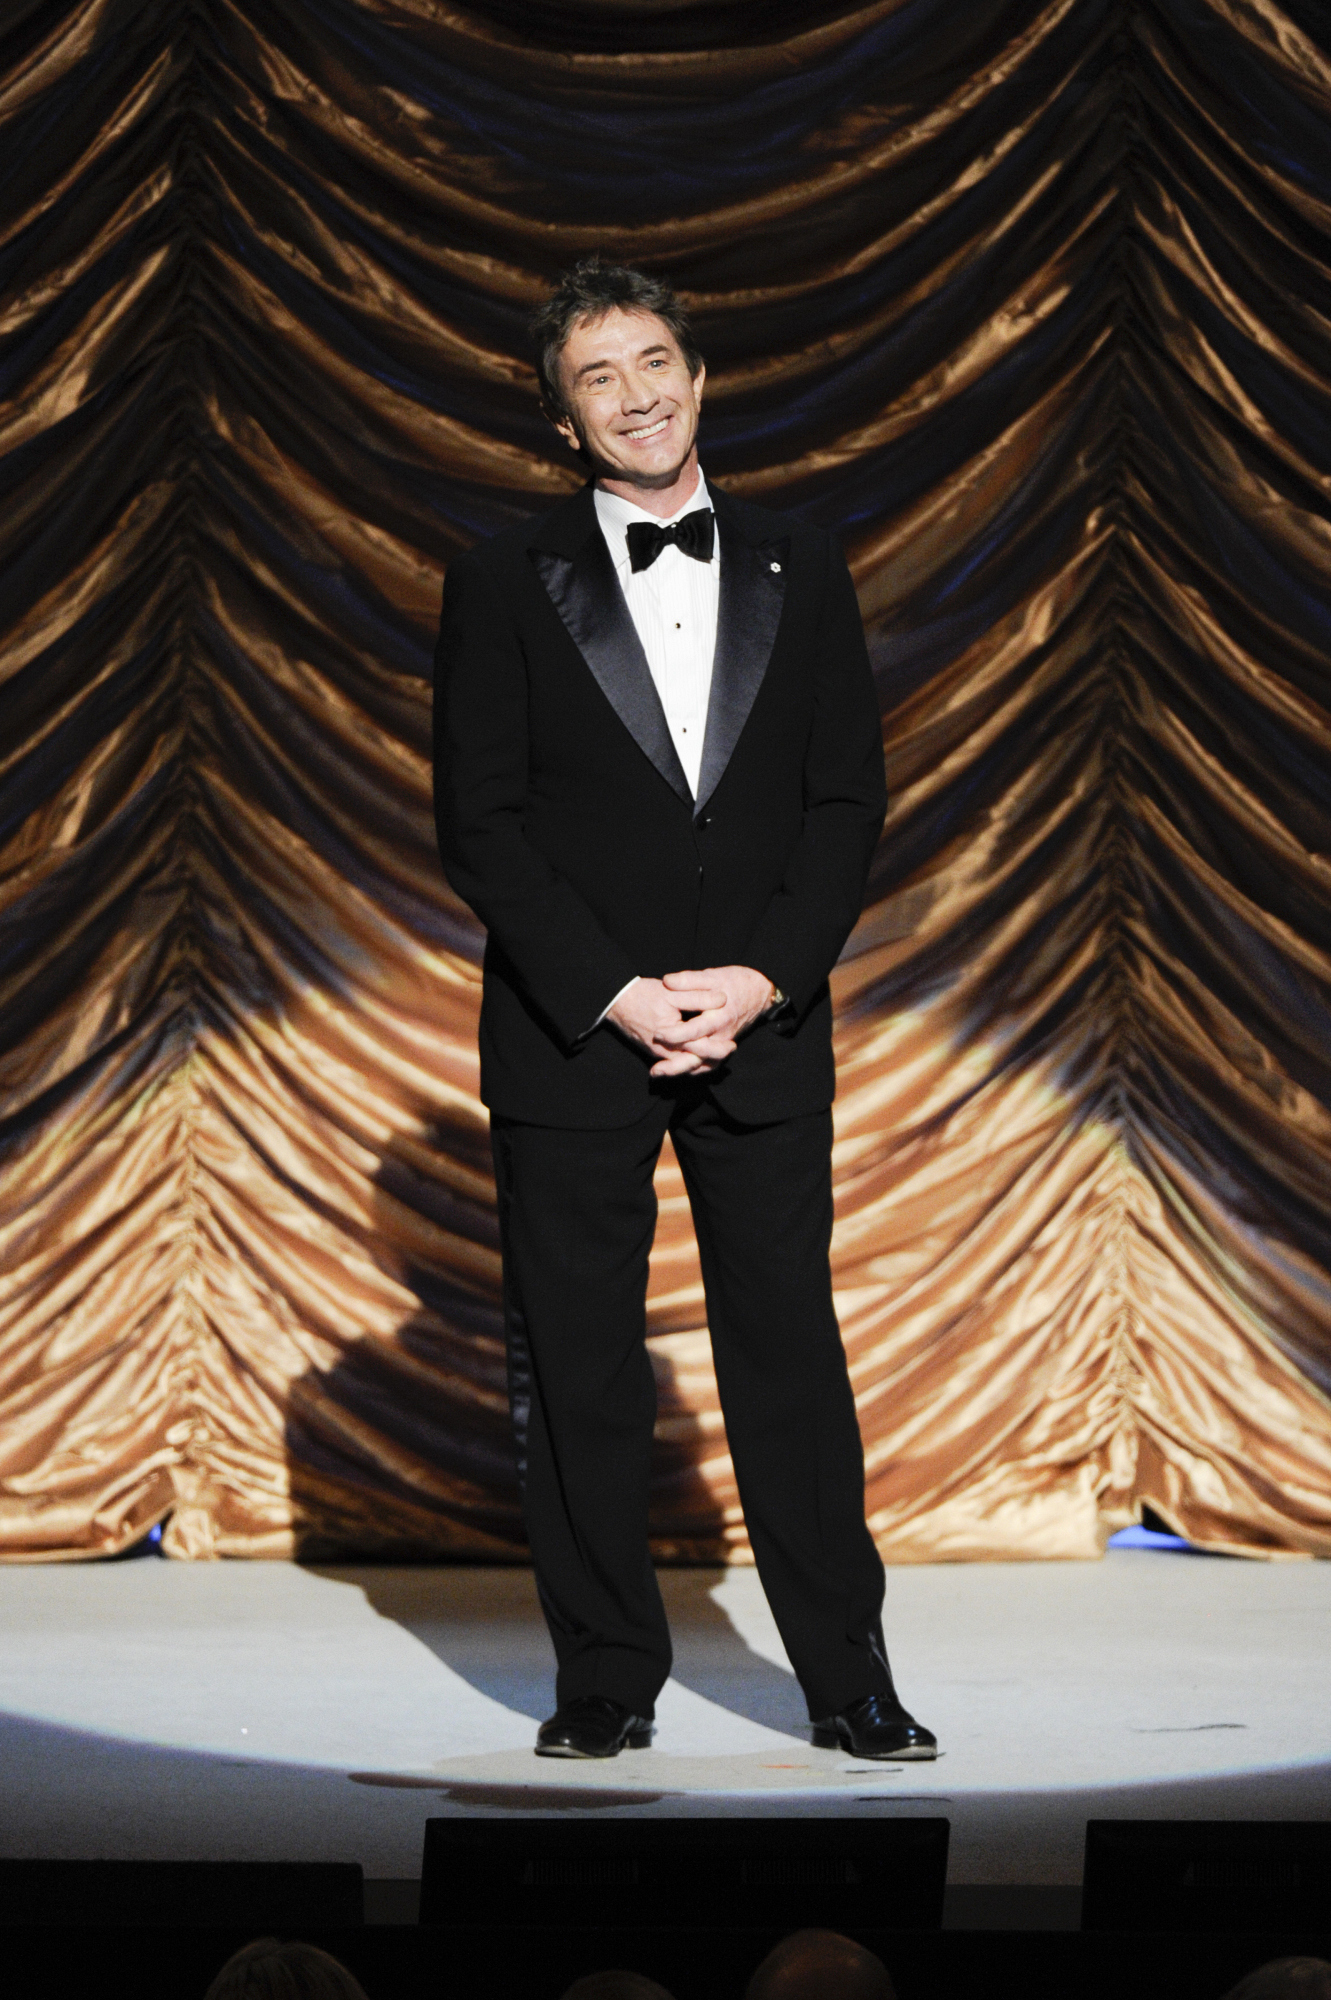 Martin Short Smiles at the Audience